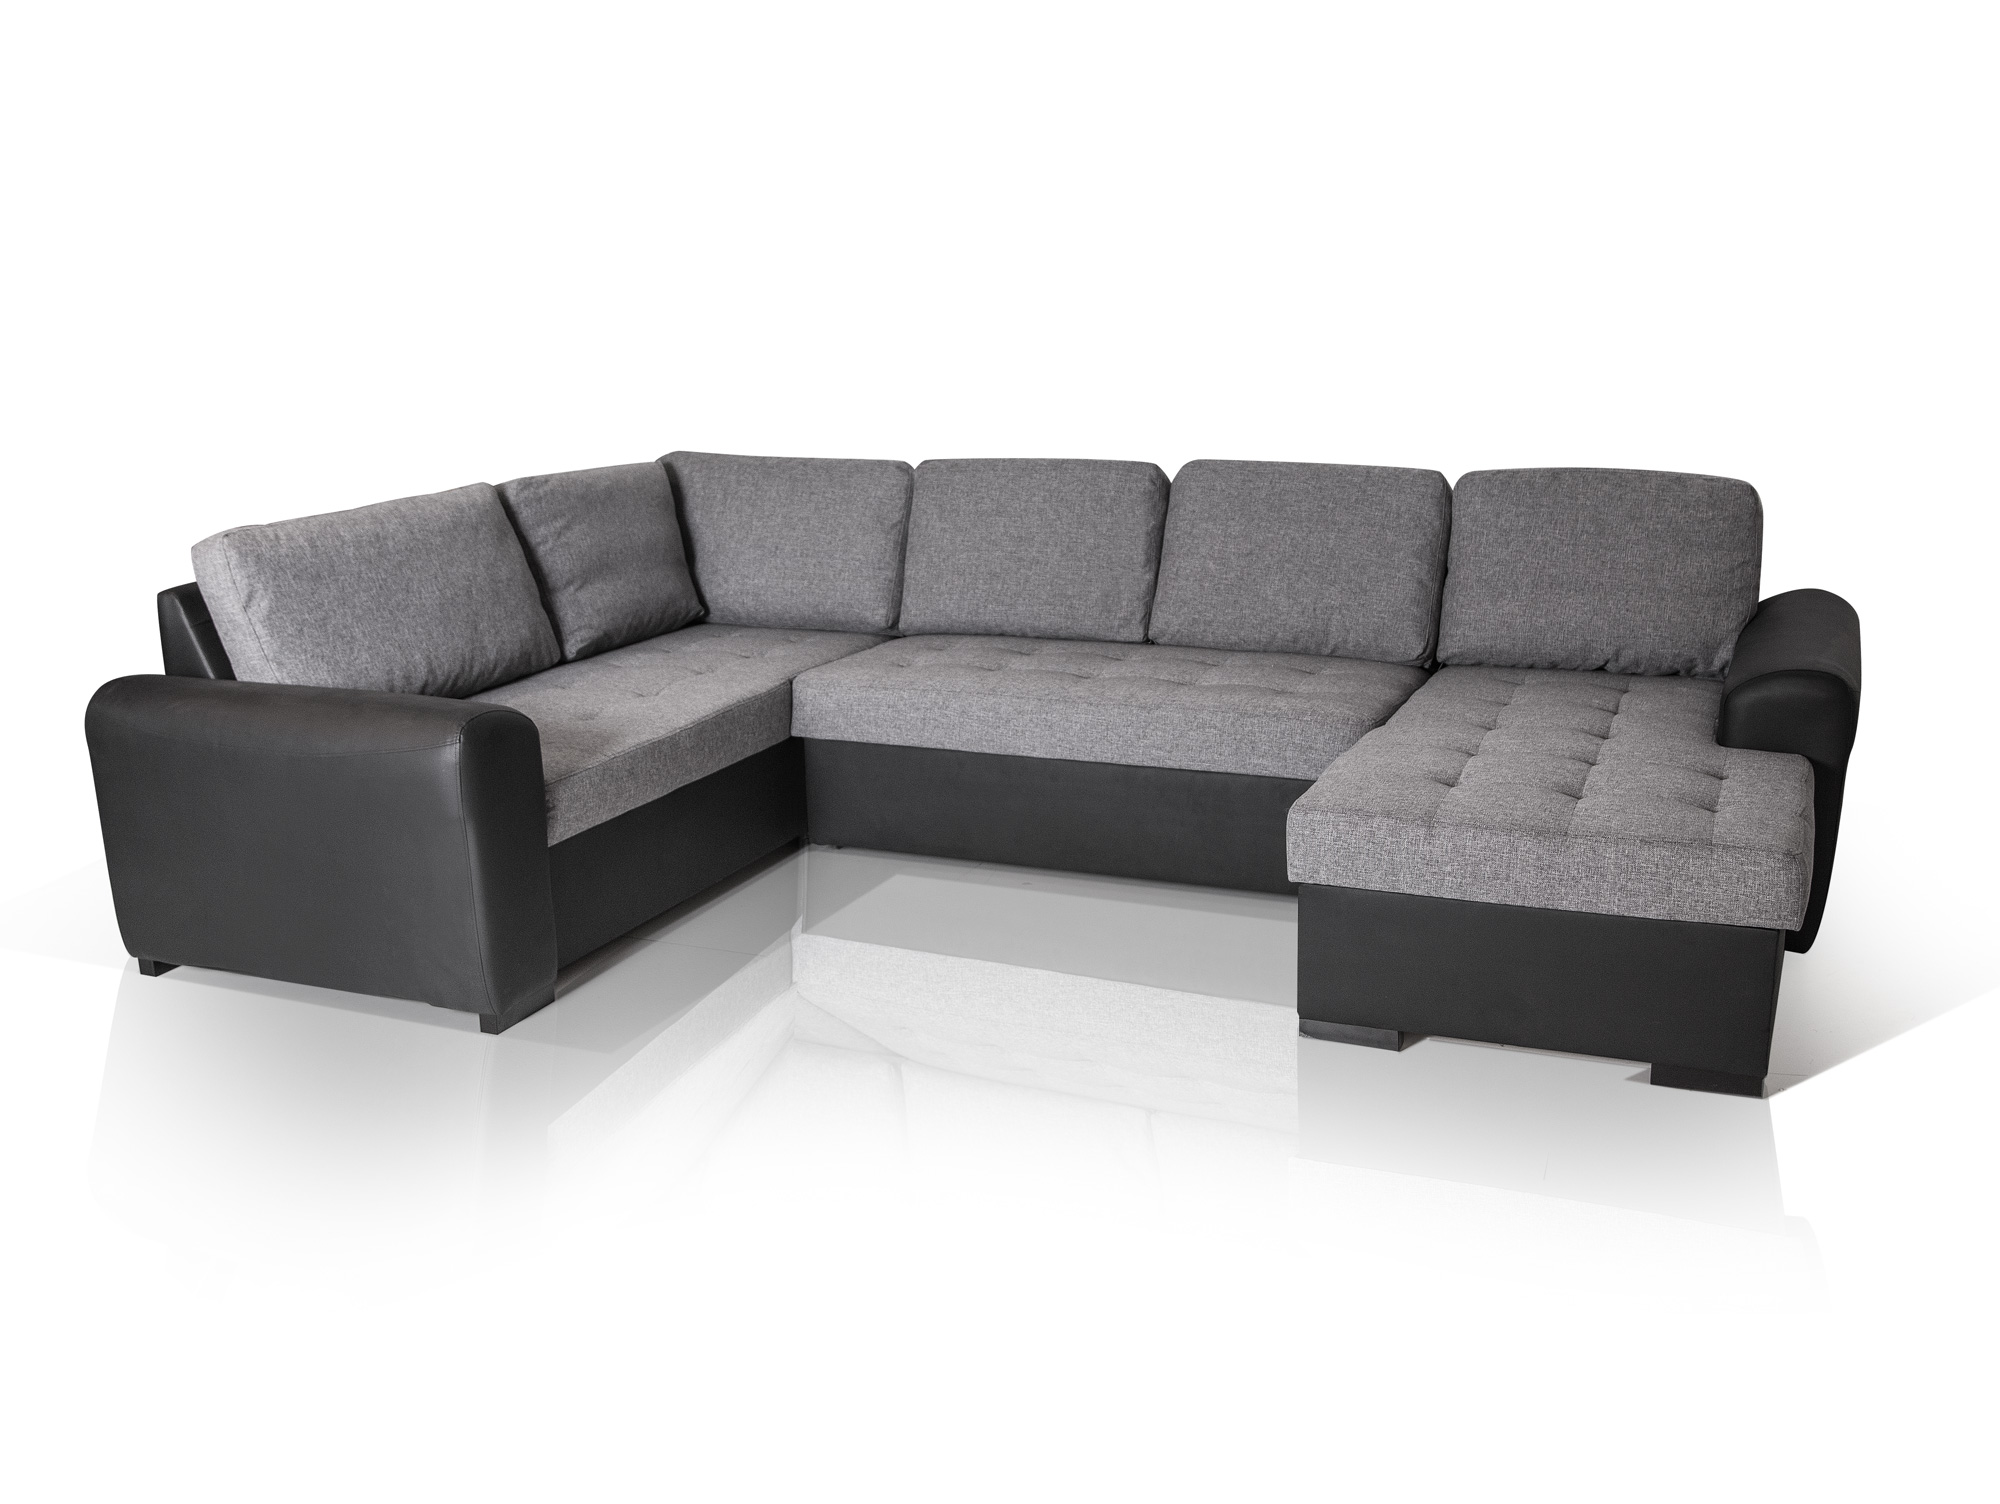 Polsterecke Montego Couch Montego